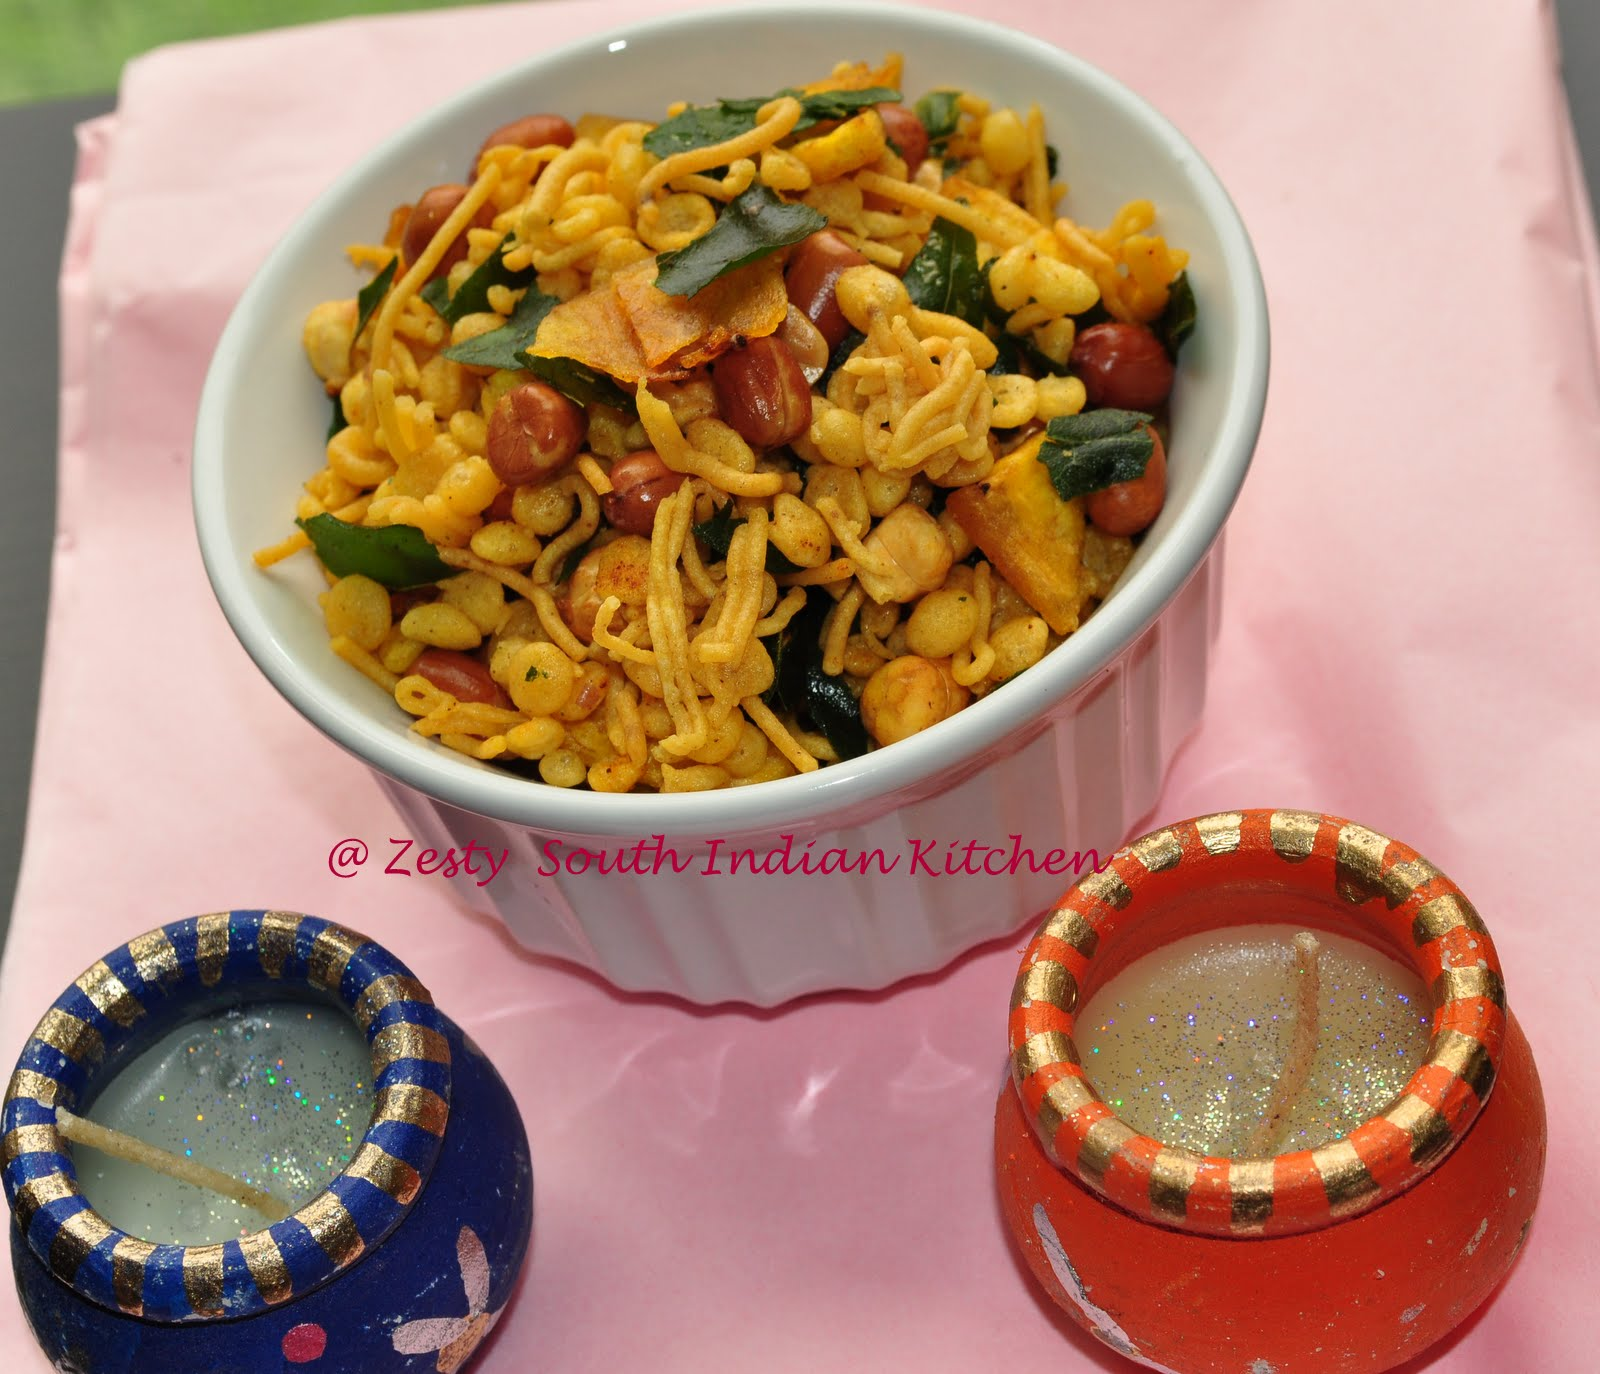 South Indian Mixture And Mysore Pak : Diwali Treats From My Kitchen